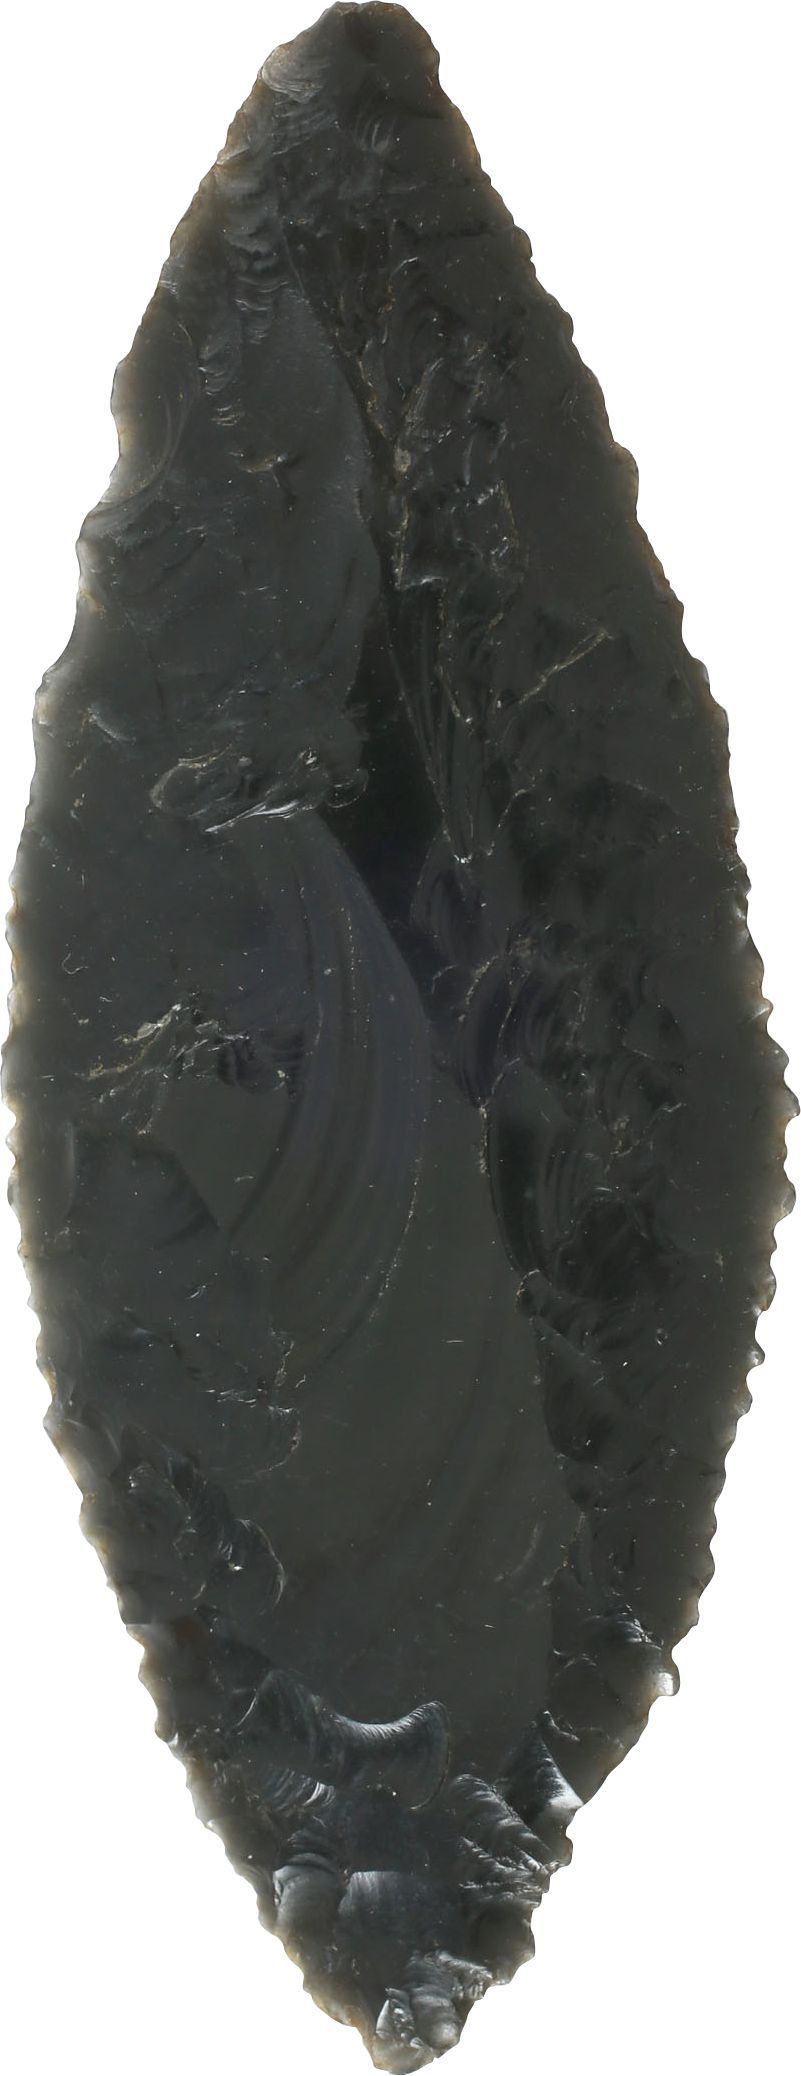 Good Pre-Columbian Obsidian Spear Point - Product